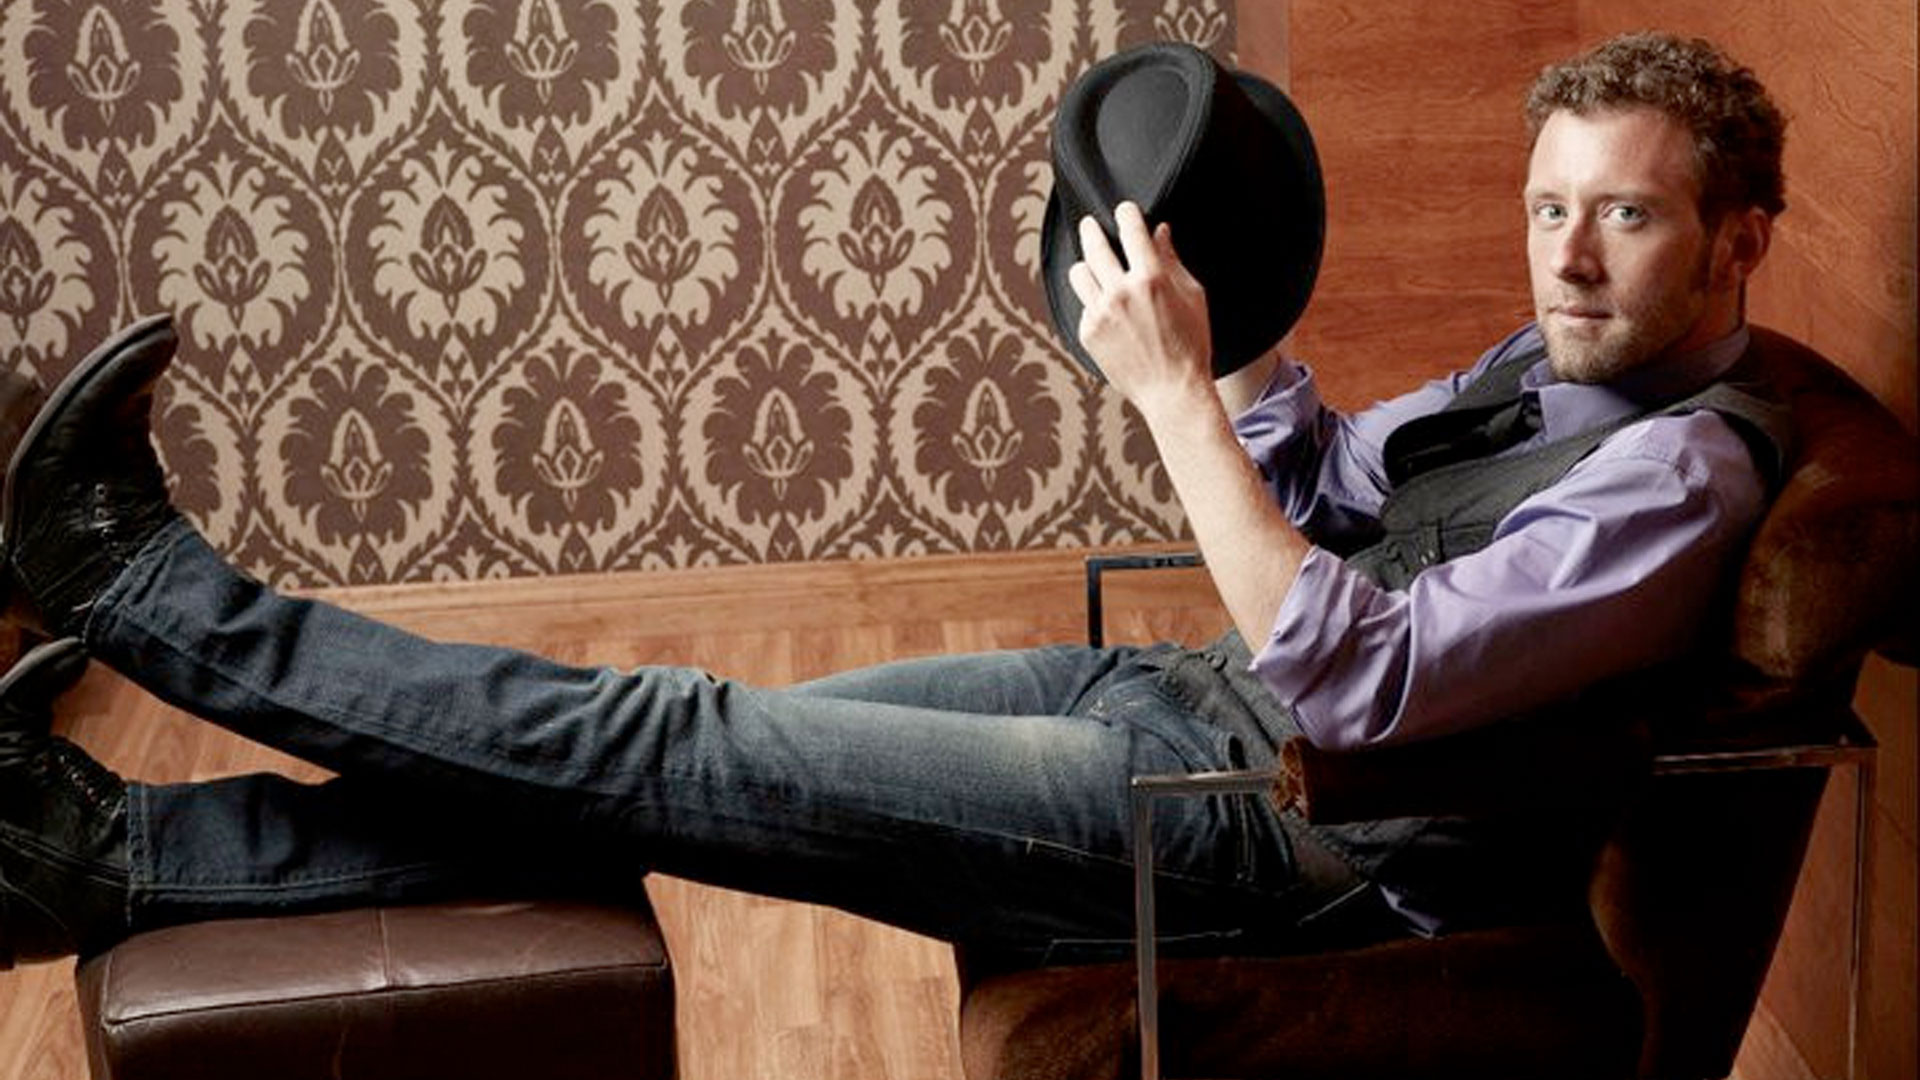 TJ Thyne lounging in purple shirt and grey vest, holding a fedora hat